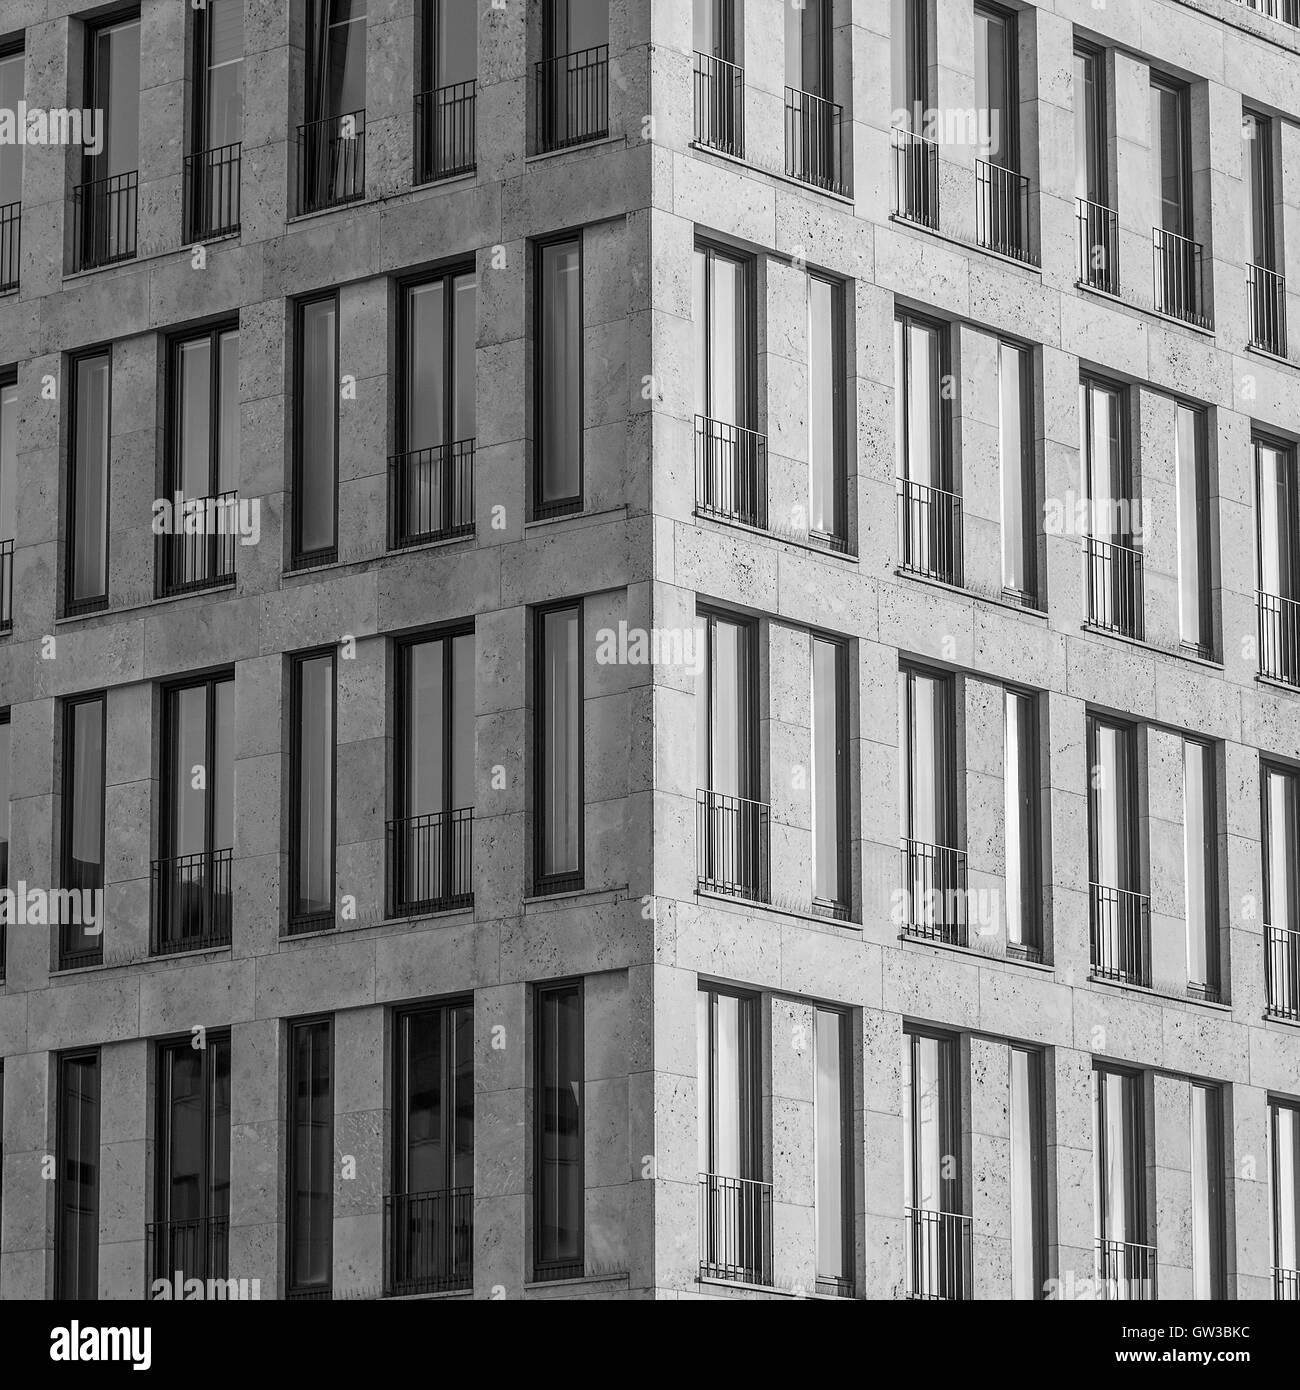 Windows Of The Office Buildings Black And White Image Stock Photo Alamy